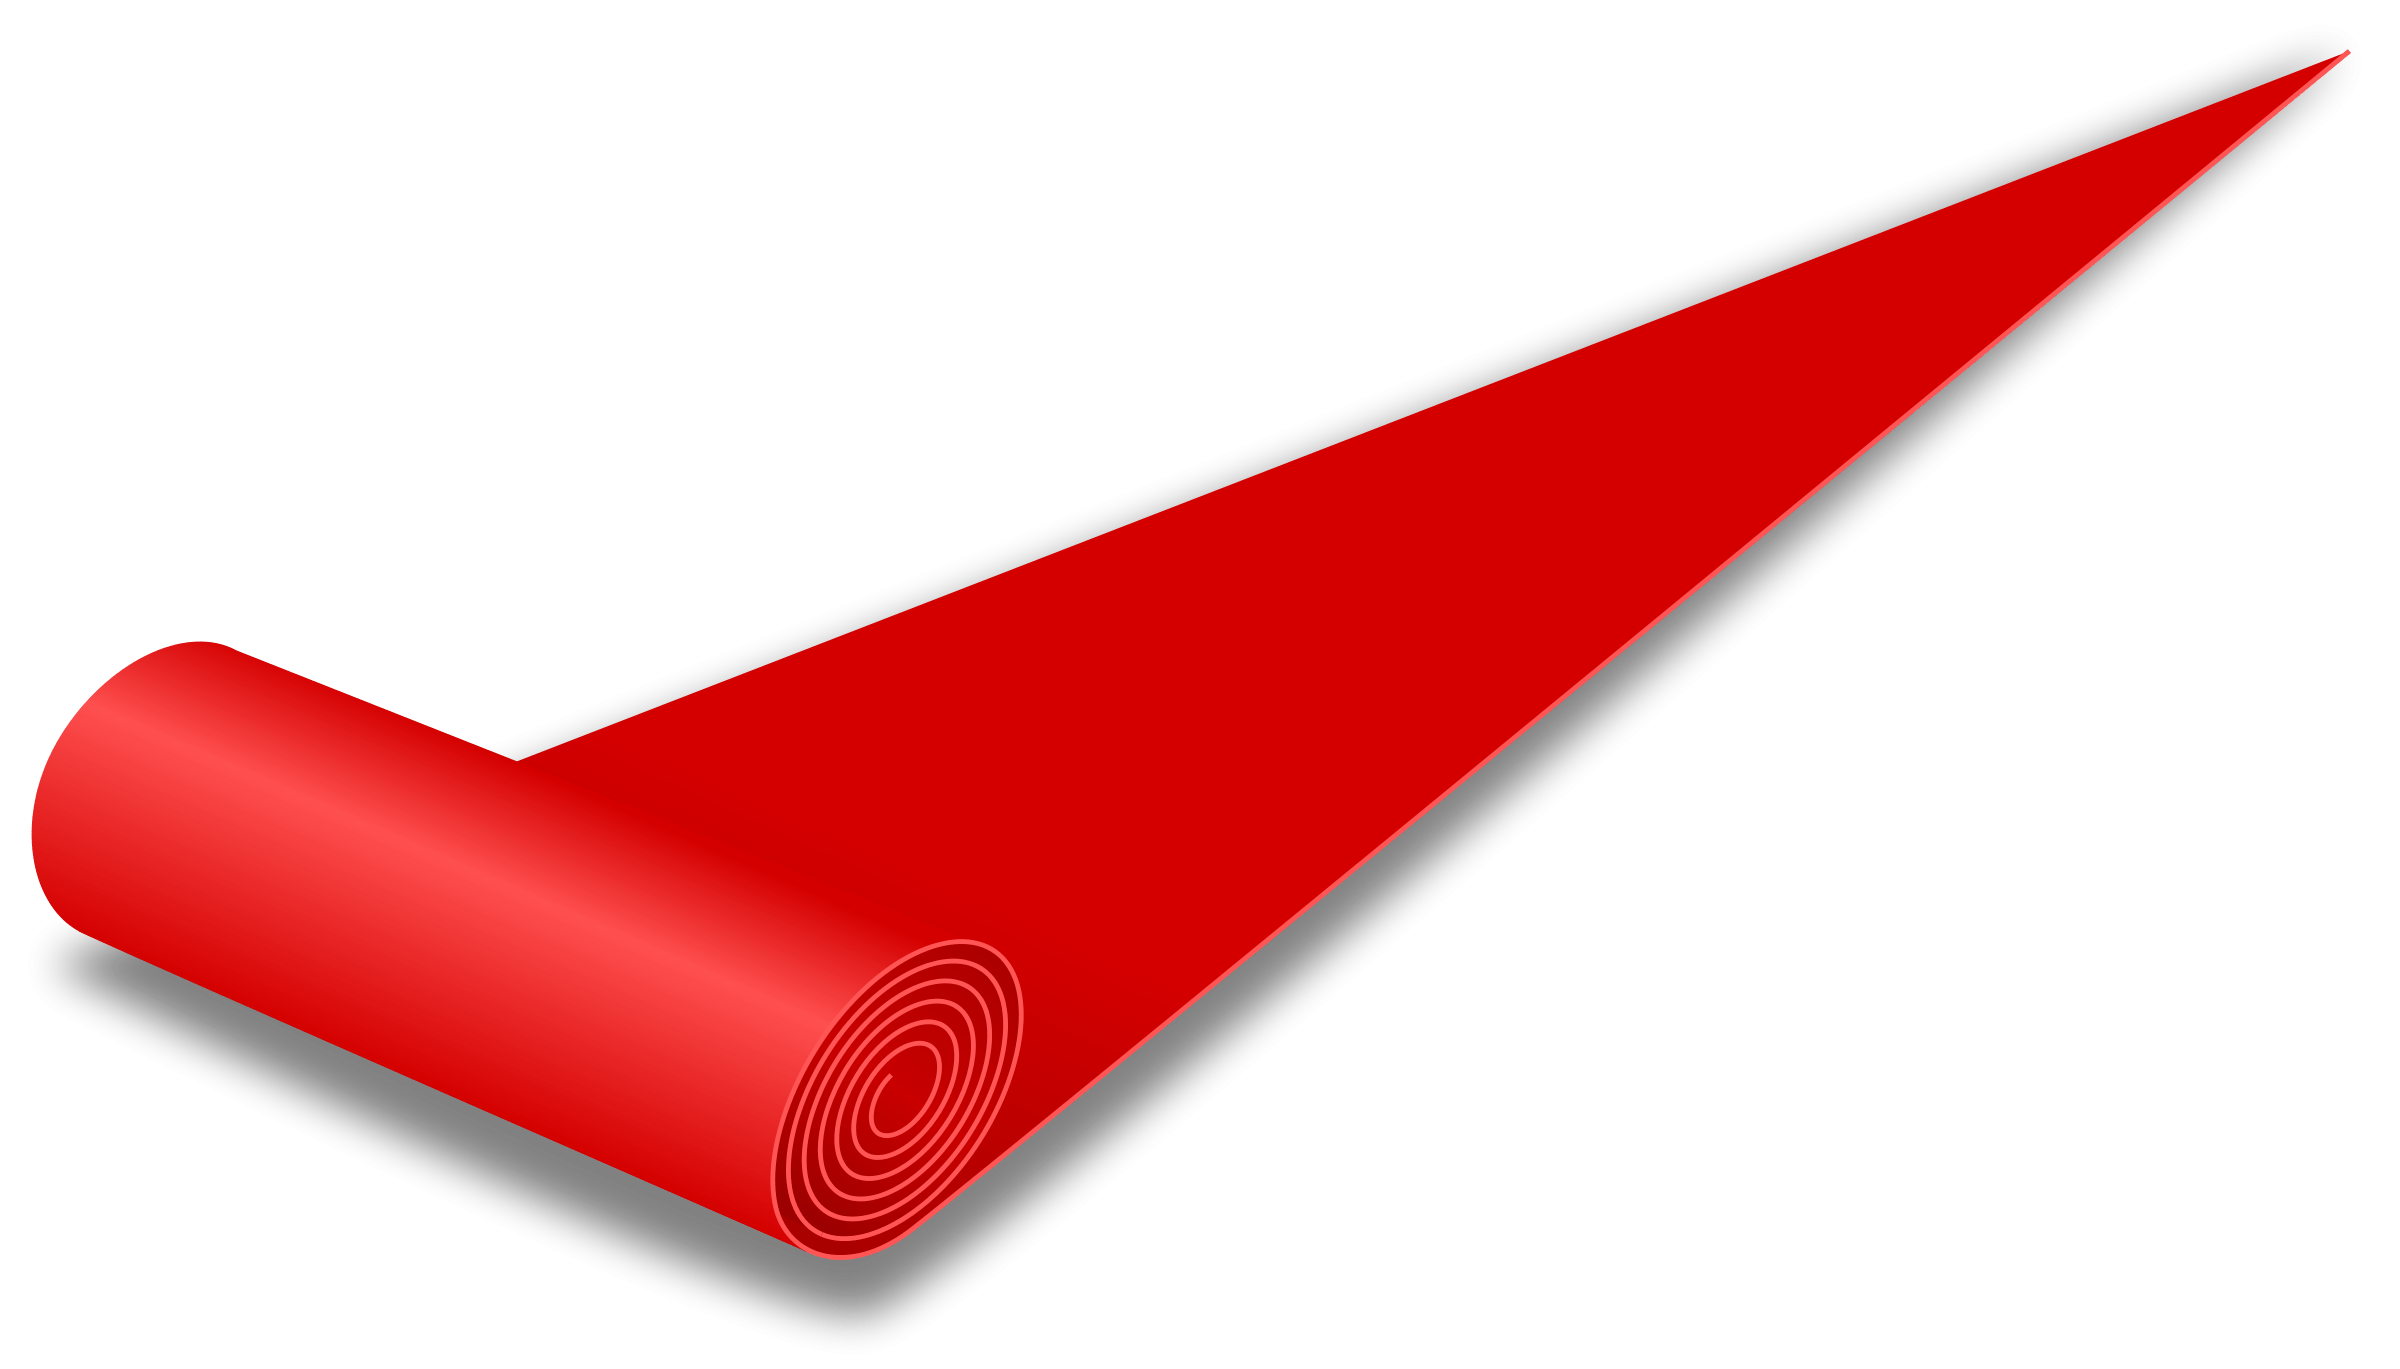 Roter Teppich Vektor Red Carpet Png Images Free Download